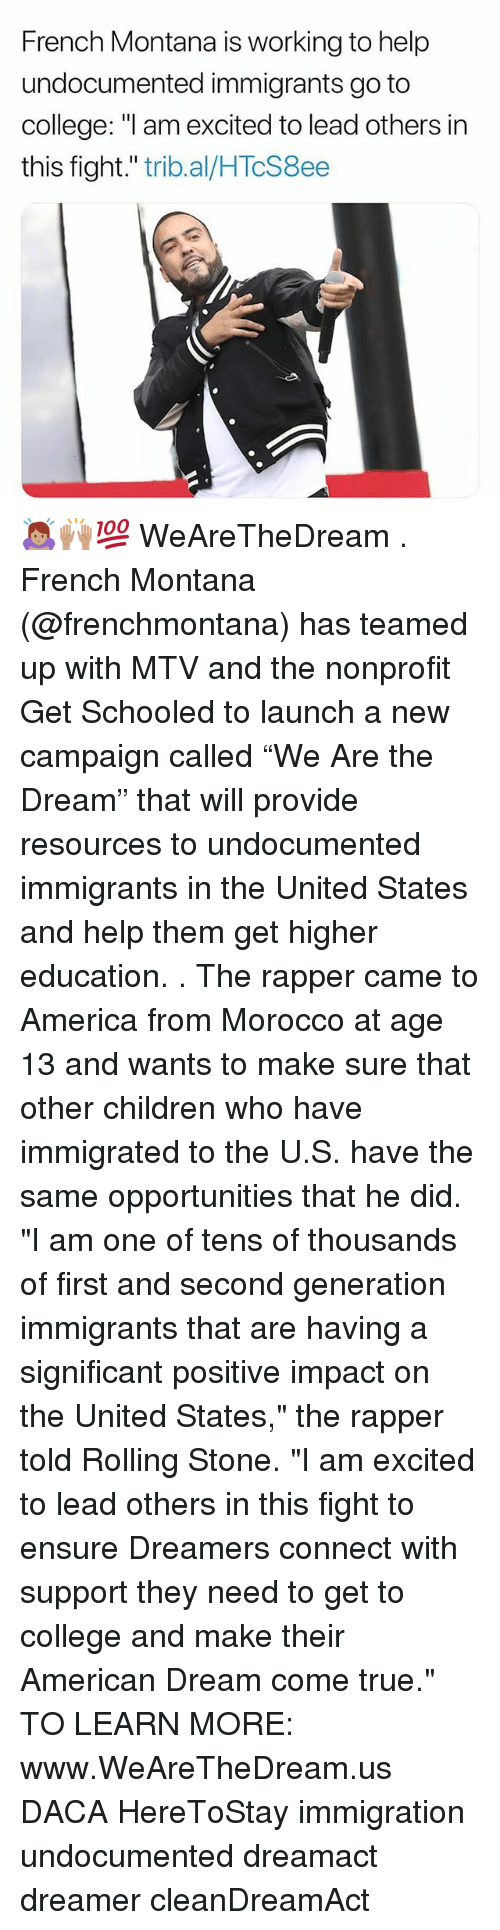 "America, Children, and College: French Montana is working to help  undocumented immigrants go to  college: ""l am excited to lead others in  this fight."" trib.al/HTcS8ee 🙇🏽‍♀️🙌🏽💯 WeAreTheDream . French Montana (@frenchmontana) has teamed up with MTV and the nonprofit Get Schooled to launch a new campaign called ""We Are the Dream"" that will provide resources to undocumented immigrants in the United States and help them get higher education. . The rapper came to America from Morocco at age 13 and wants to make sure that other children who have immigrated to the U.S. have the same opportunities that he did. ""I am one of tens of thousands of first and second generation immigrants that are having a significant positive impact on the United States,"" the rapper told Rolling Stone. ""I am excited to lead others in this fight to ensure Dreamers connect with support they need to get to college and make their American Dream come true."" TO LEARN MORE: www.WeAreTheDream.us DACA HereToStay immigration undocumented dreamact dreamer cleanDreamAct"